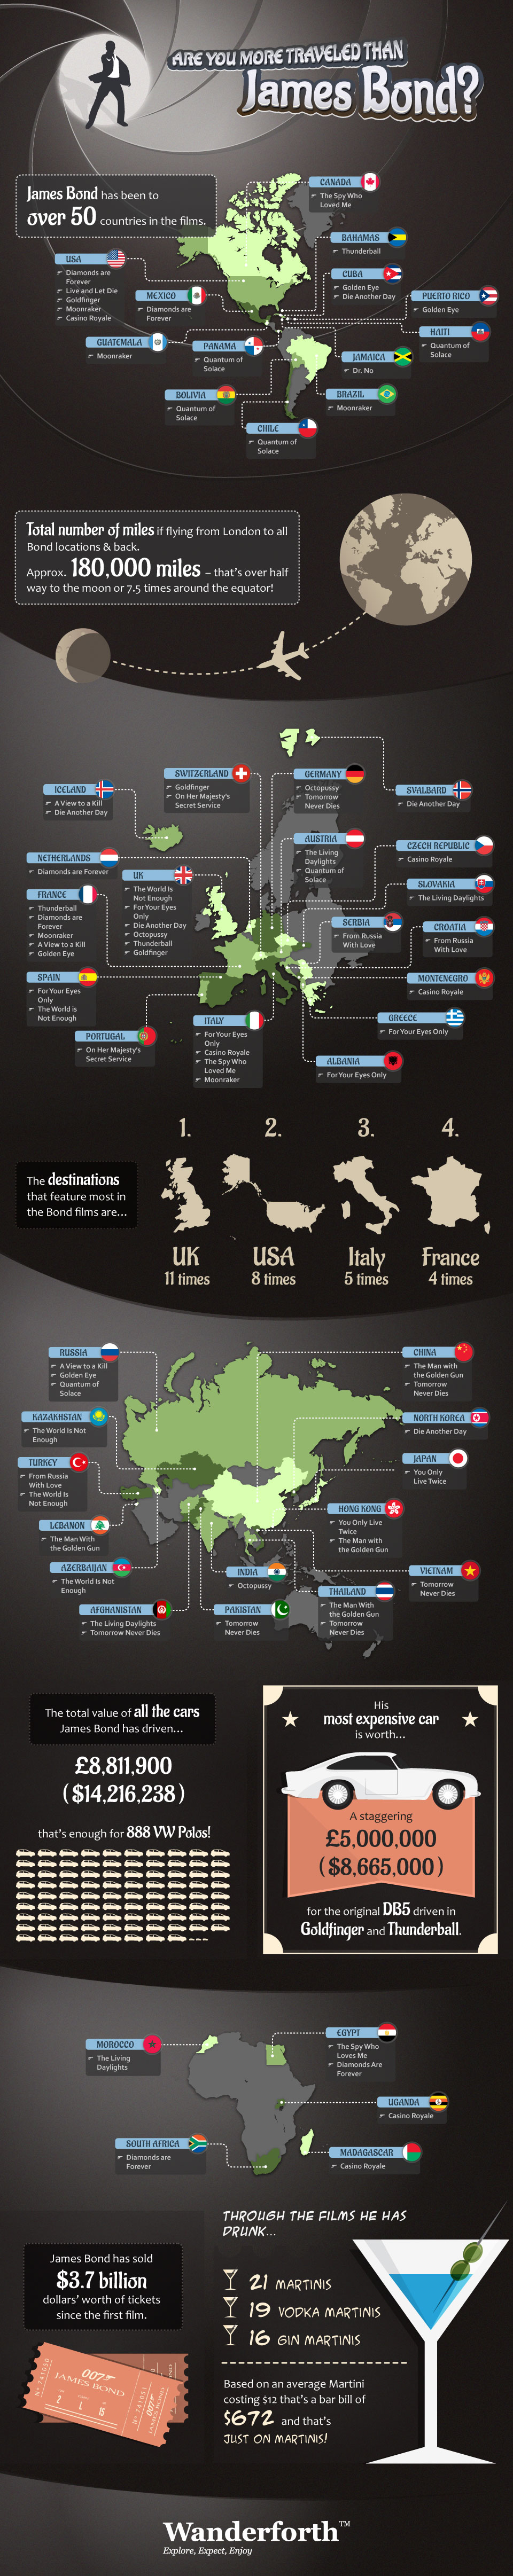 James Bond Travel Destinations-Infographic